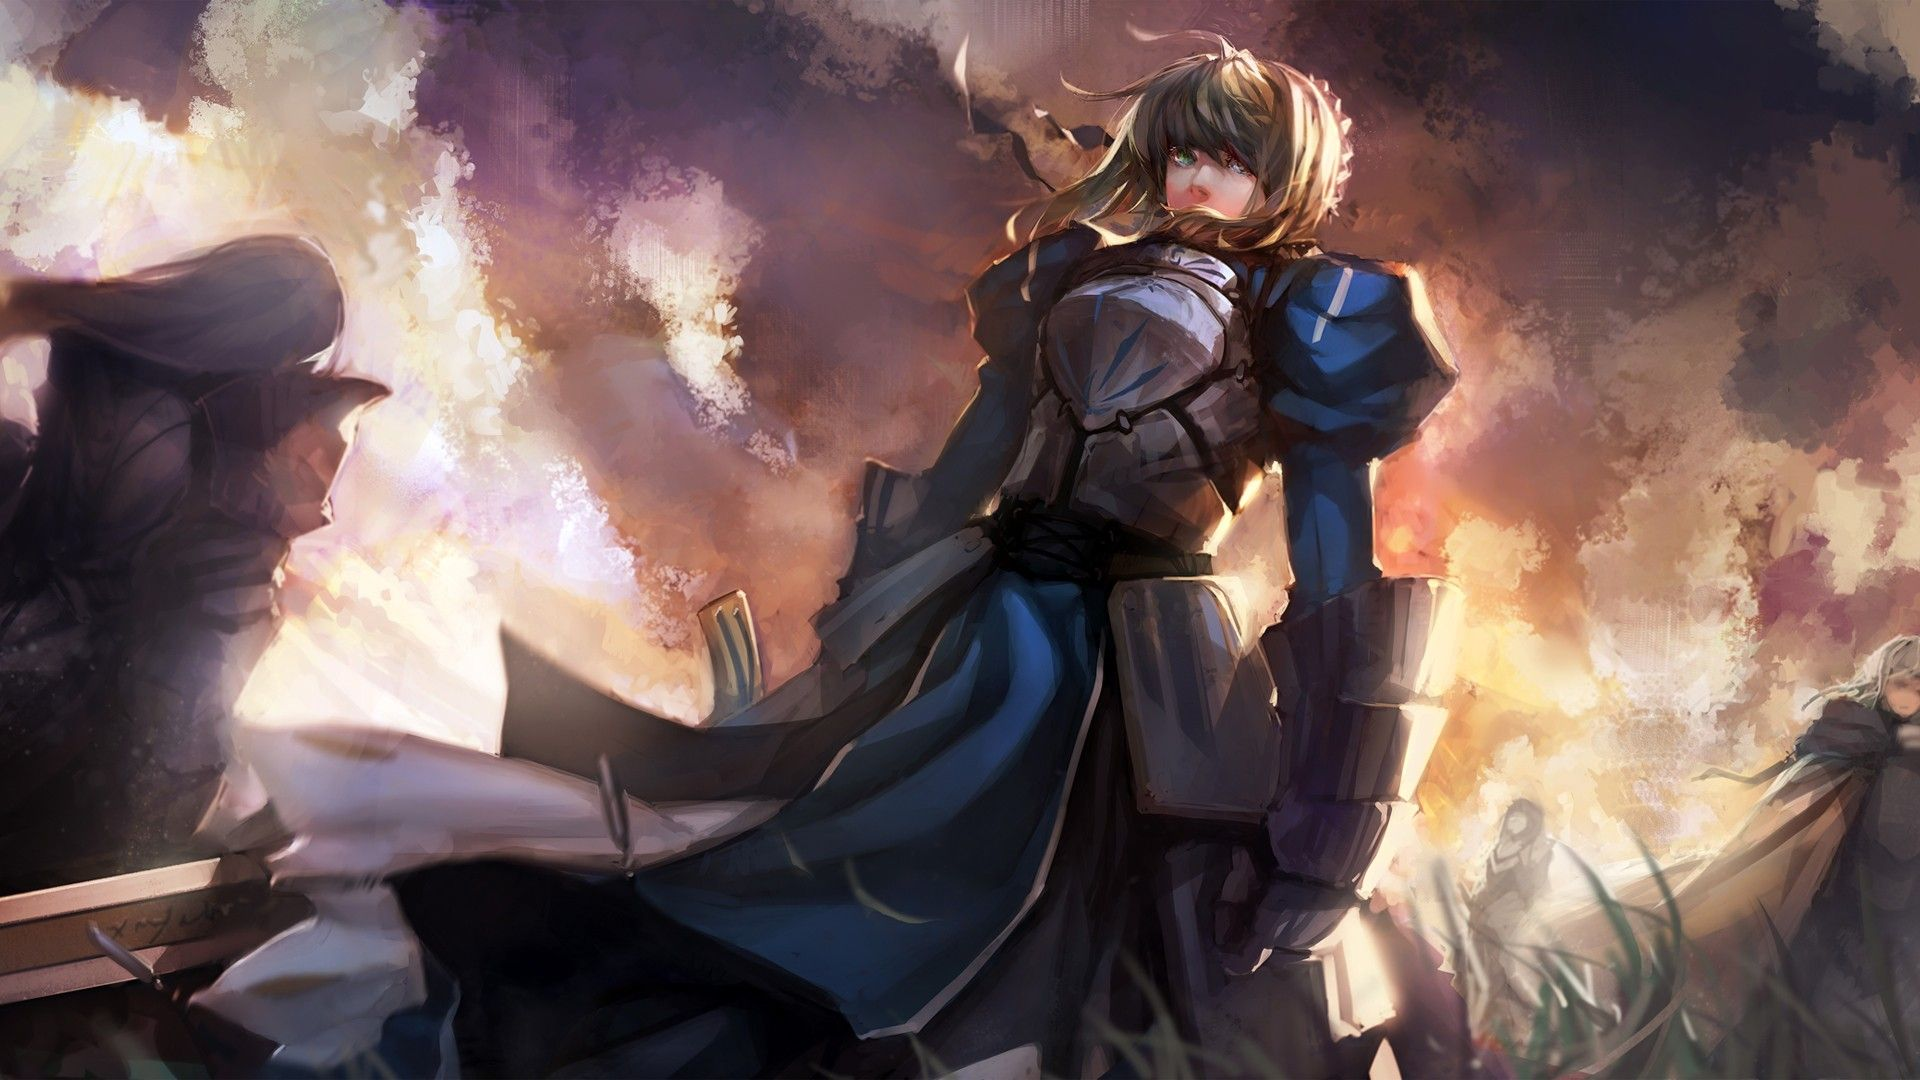 Epic Anime Wallpapers Wallpaper